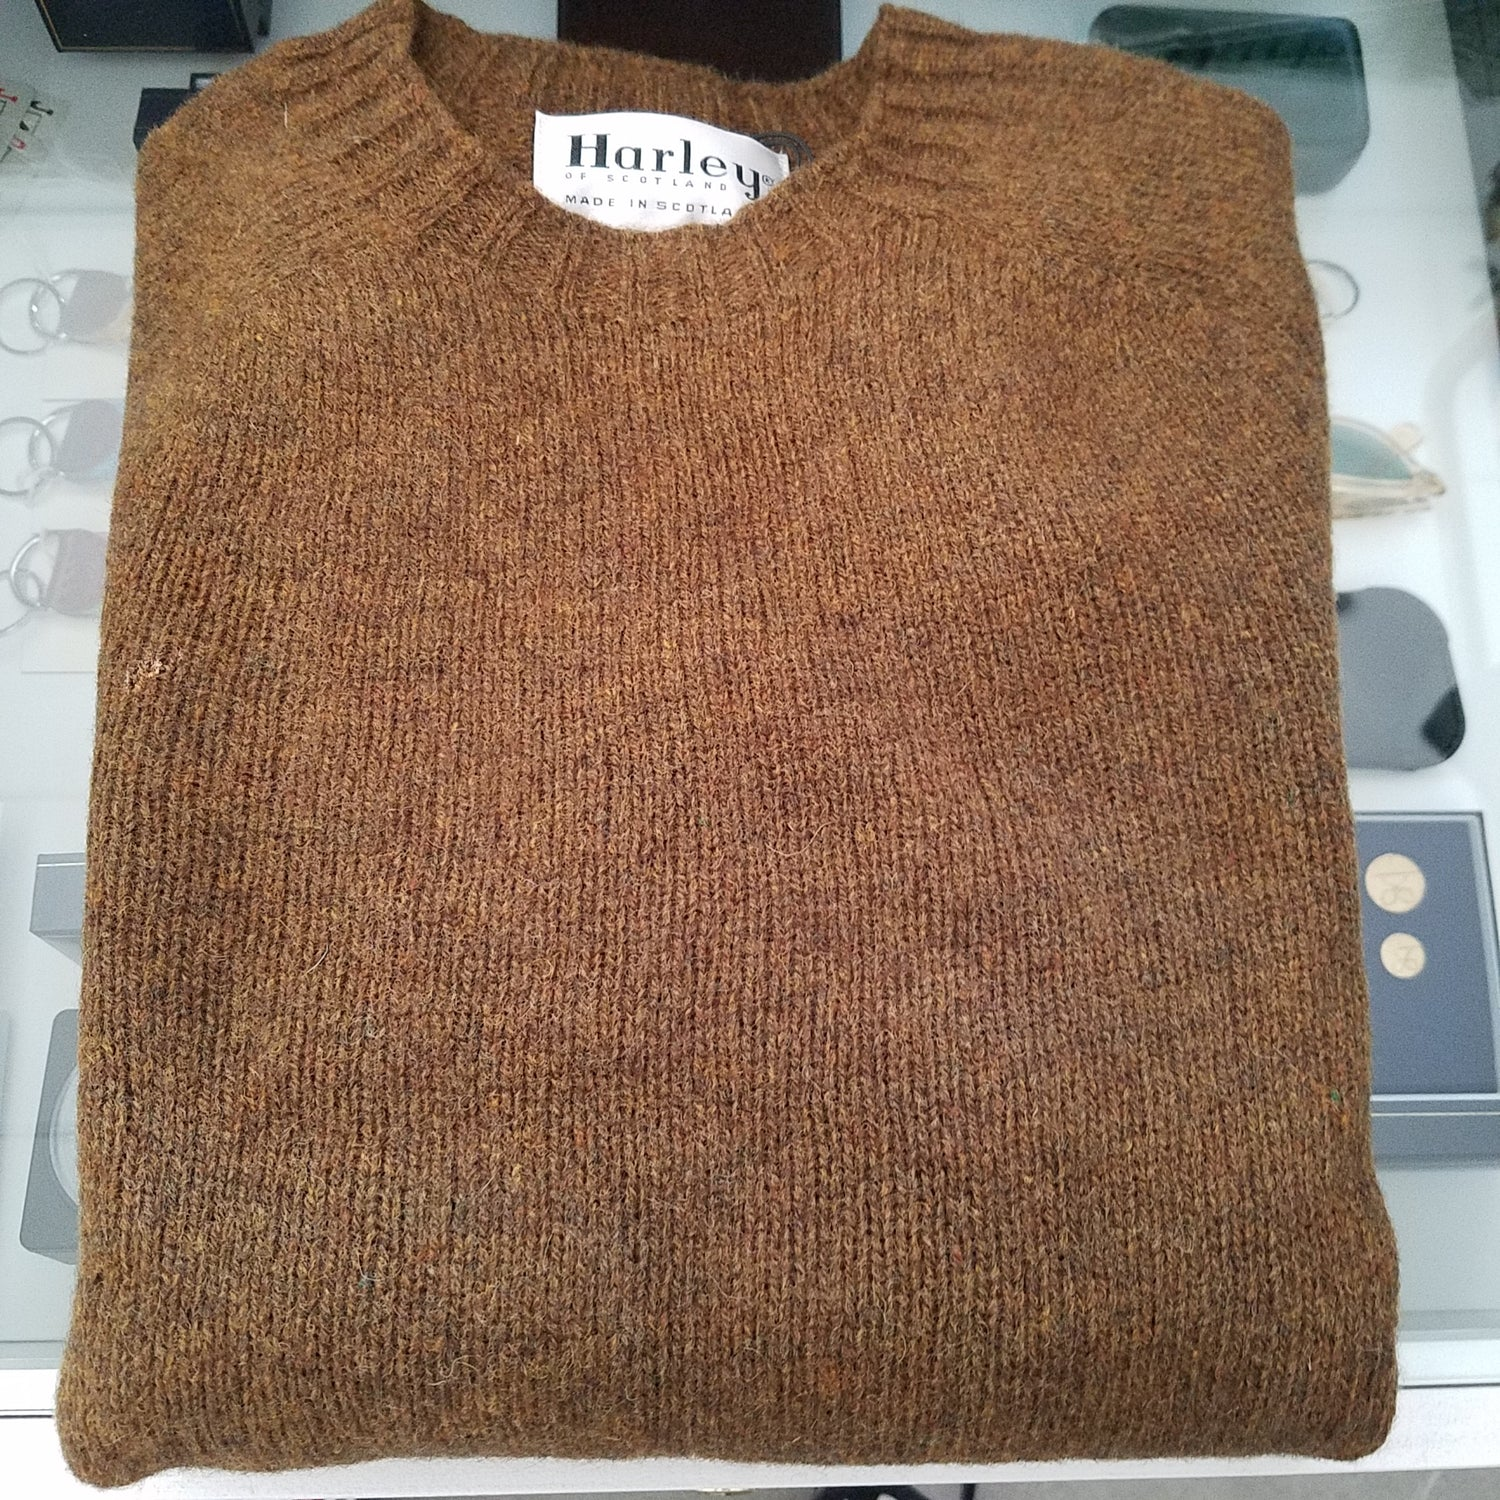 Copy of Harley Crew Neck Sweater